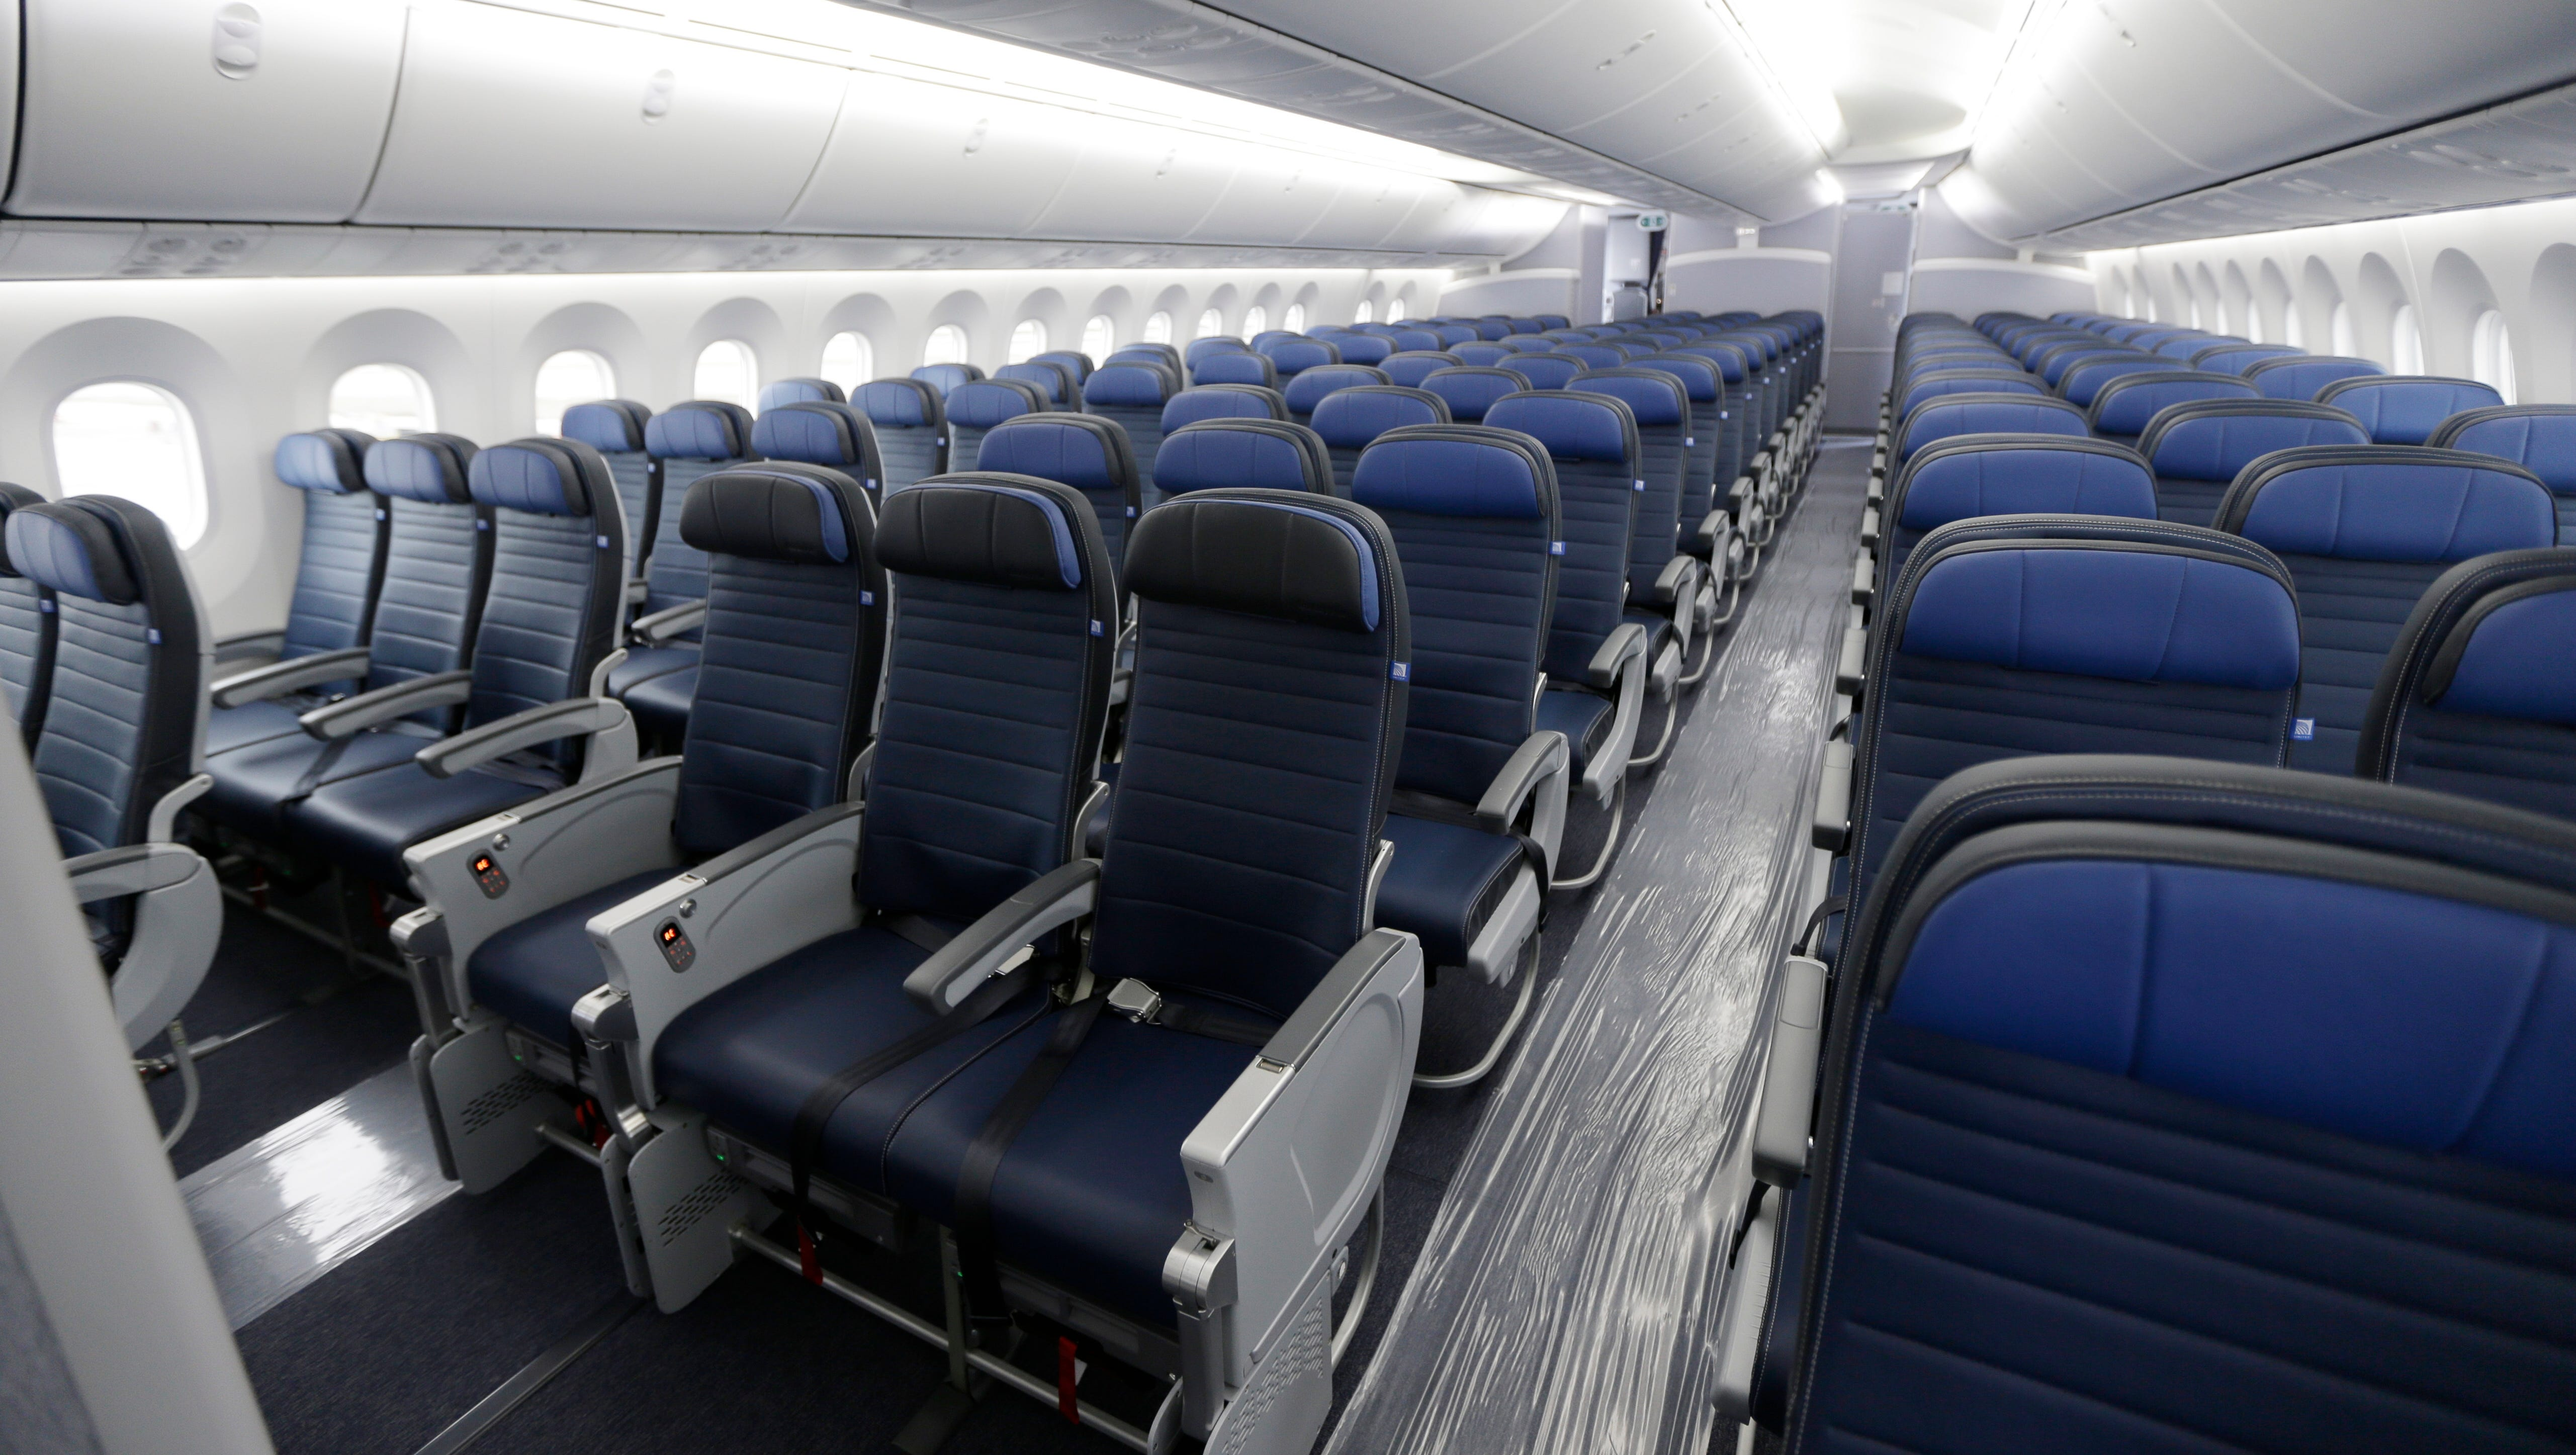 usatoday.com - Kevin Freking, Associated Press - Congress could make FAA boost size of seats, legroom on airplanes